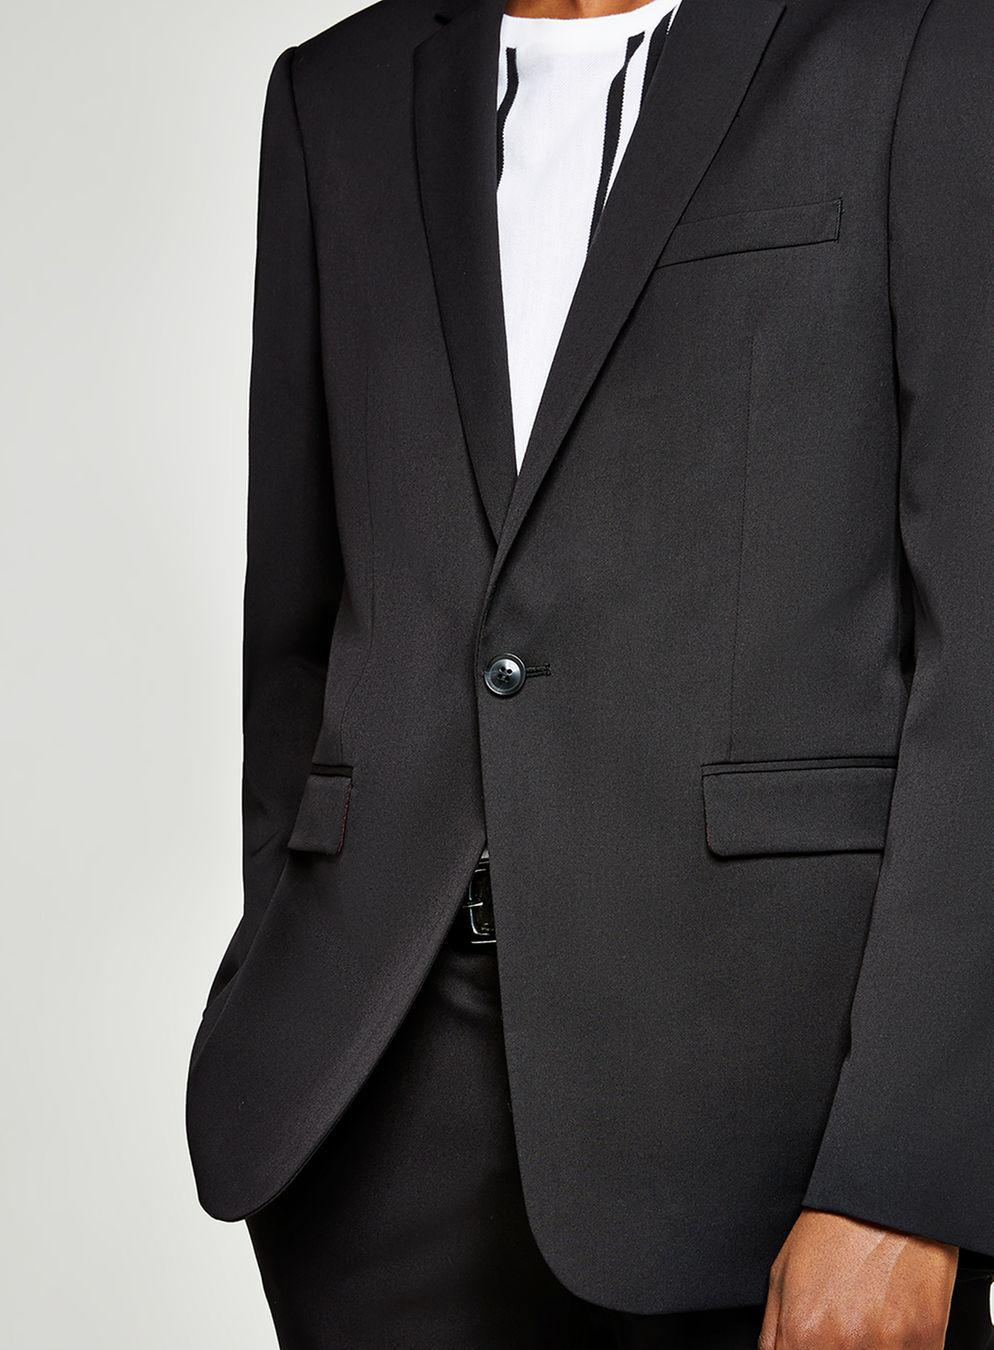 TOPMAN Synthetic Super Skinny Fit Single Breasted Suit Blazer With Notch Lapel in Black for Men